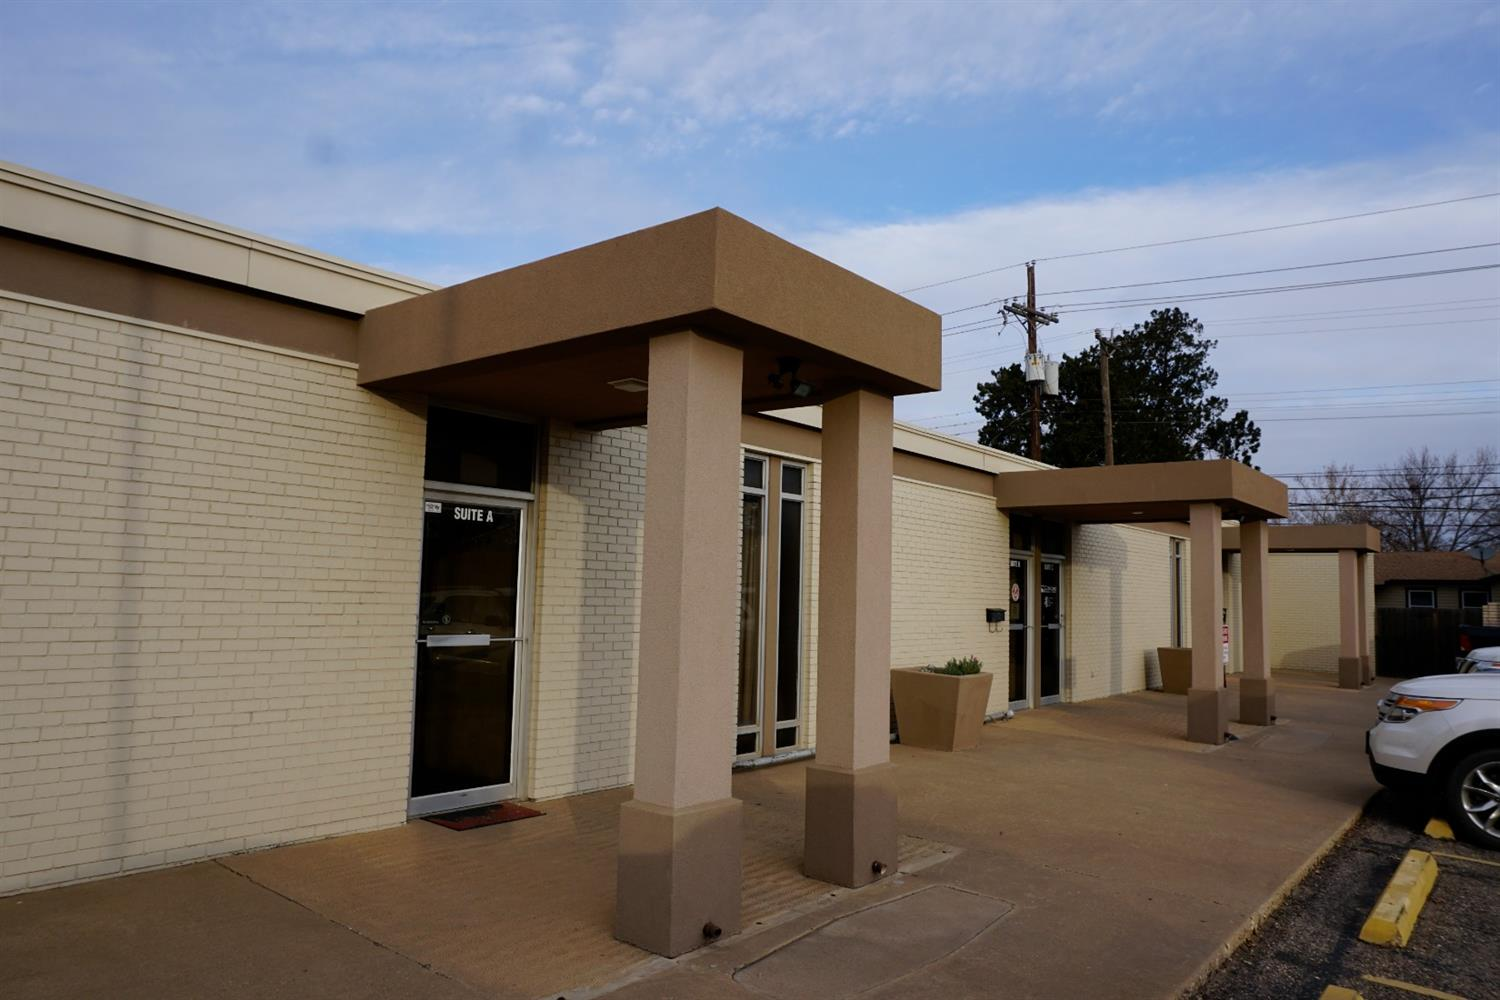 Multi-Tenant Office Building For Sale; Great investor or owner occupant opportunity; Two suites currently for lease formerly occupied by owner's business; Several suites have been remodeled; Kitchen / Break Room; Private restrooms in each suite; Electric individually metered